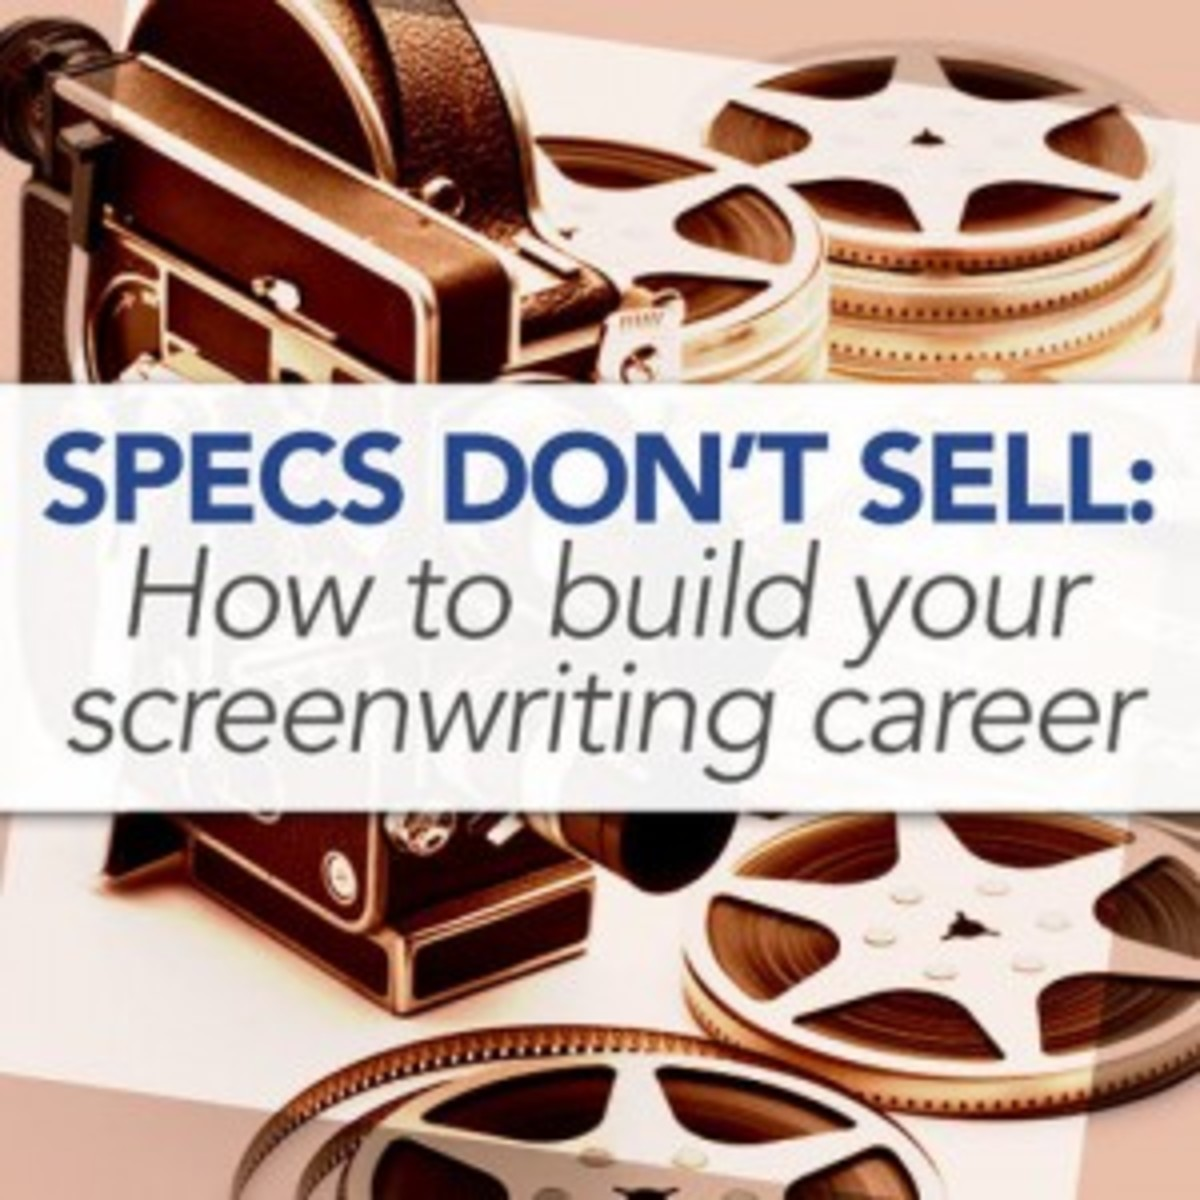 Specs Don't Sell: How to Build Your Screenwriting Career